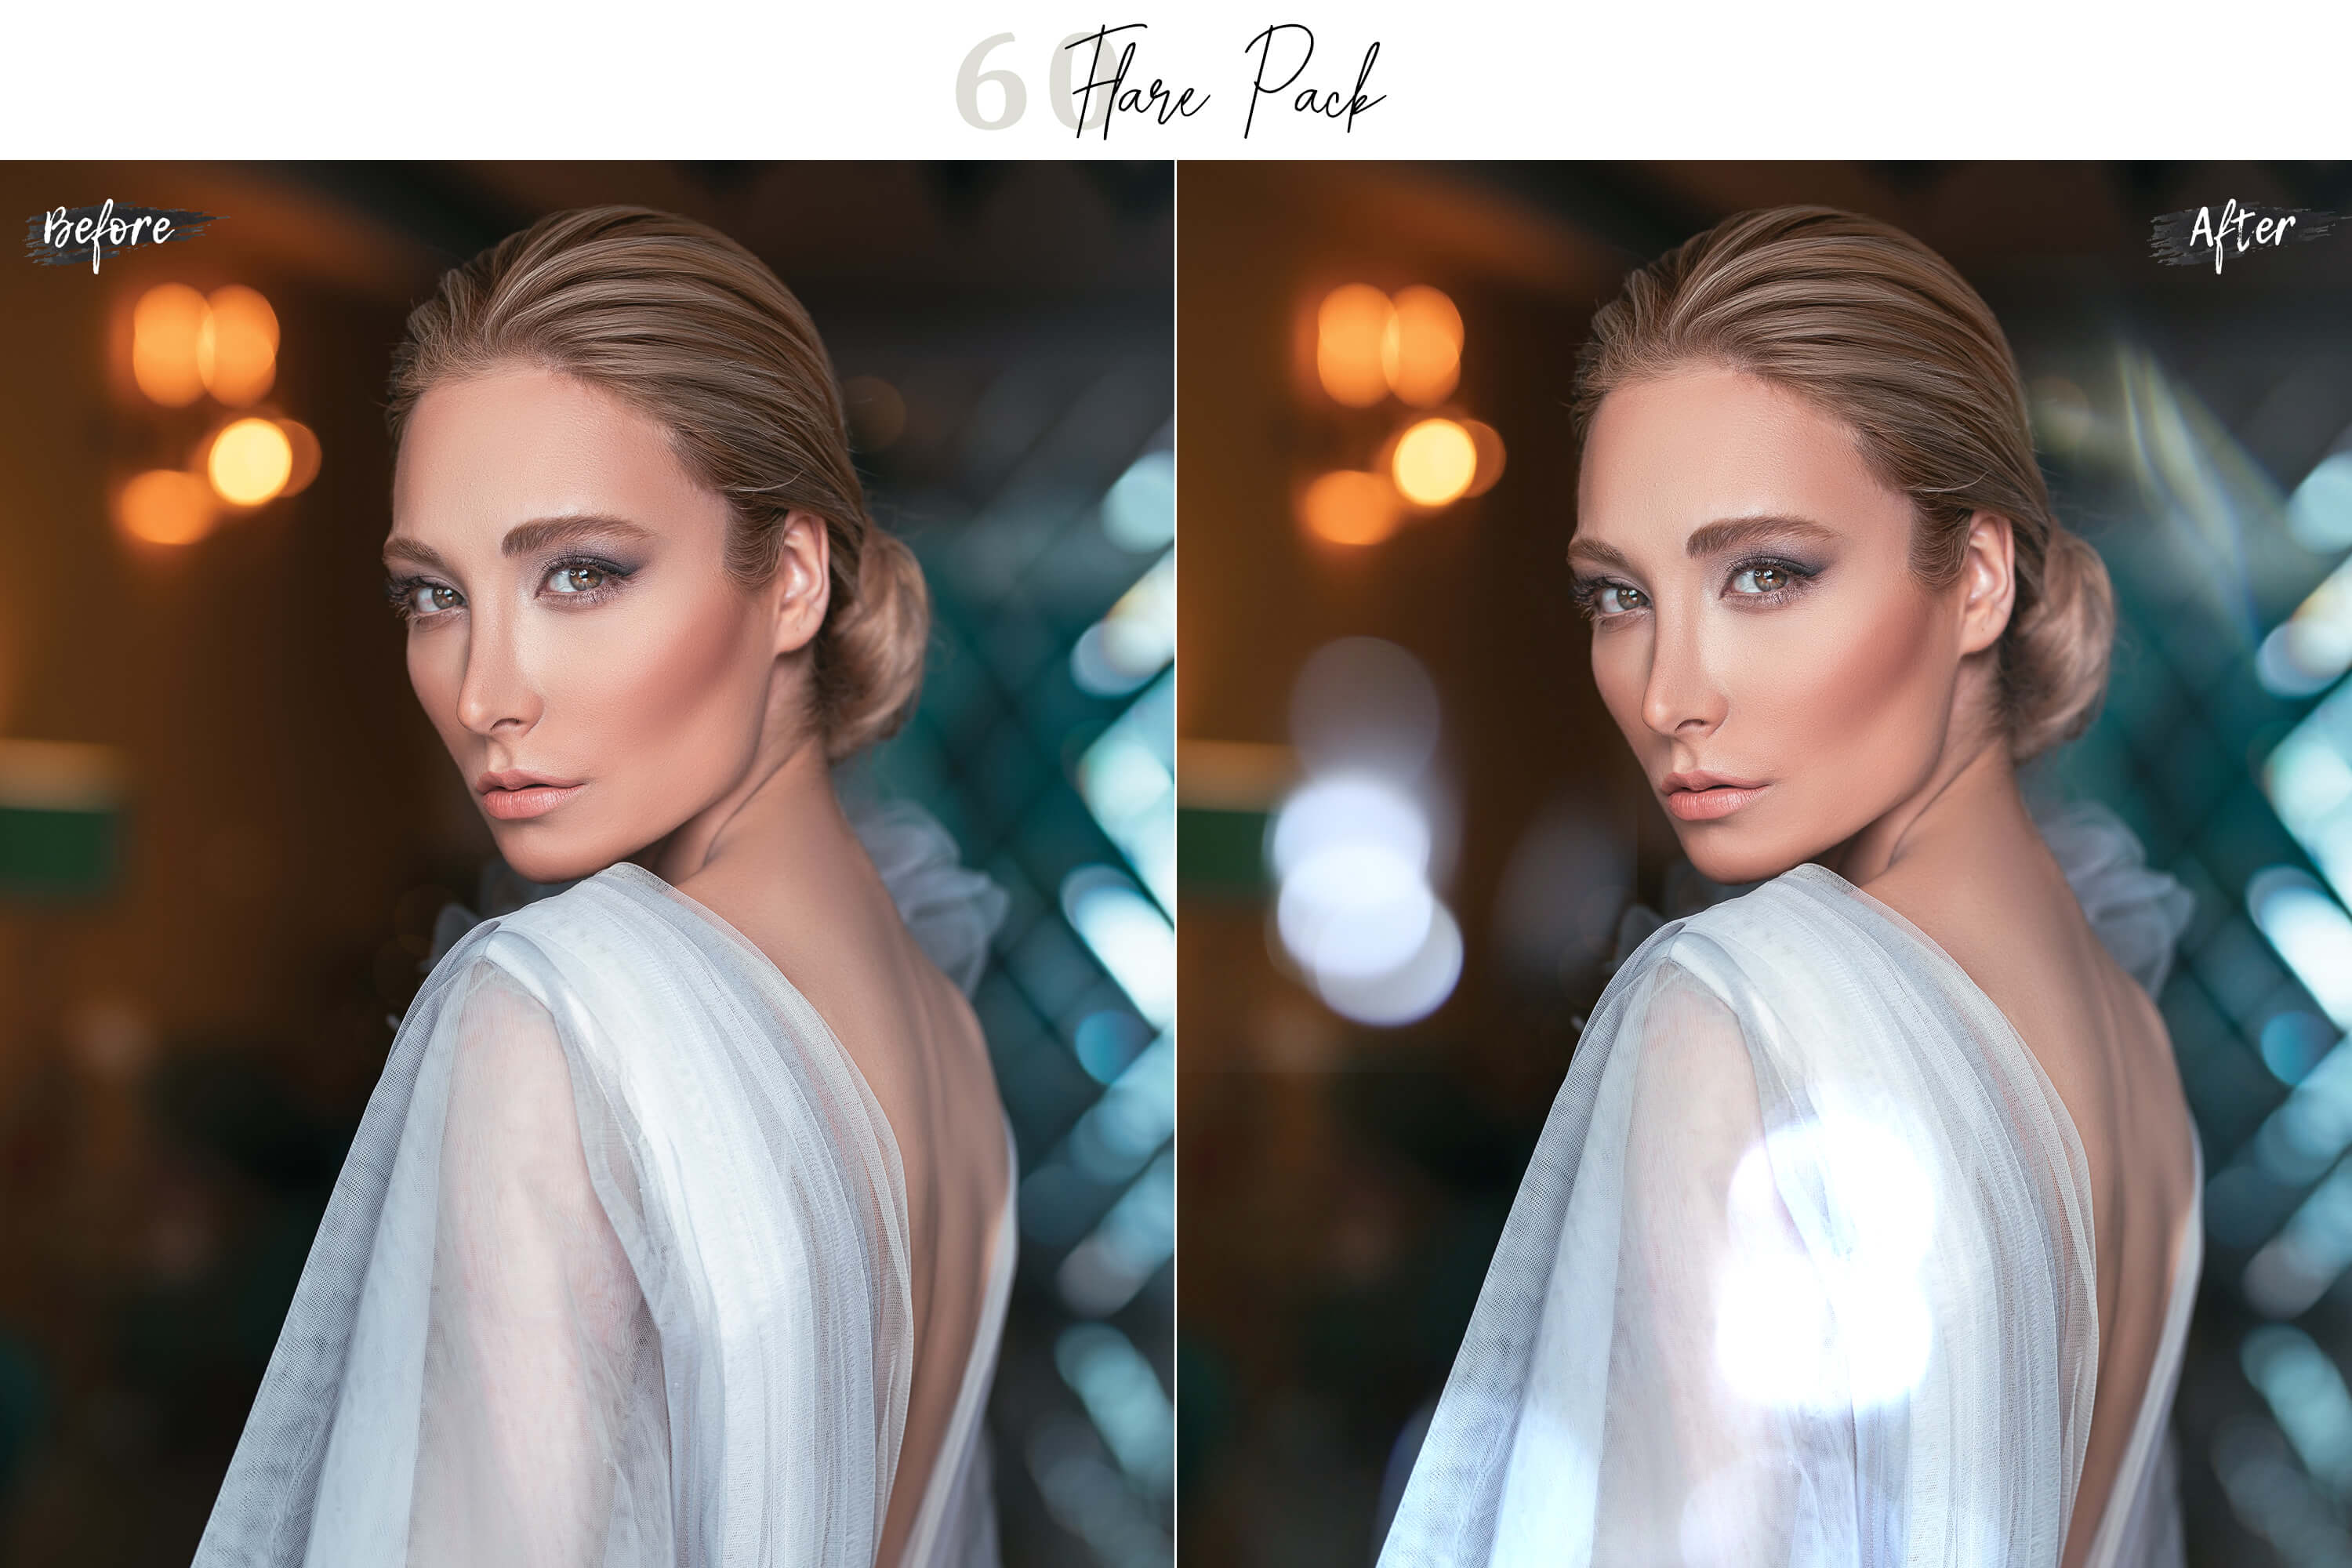 60 Flare Pack 03 lights Effect Photo Overlays example image 8